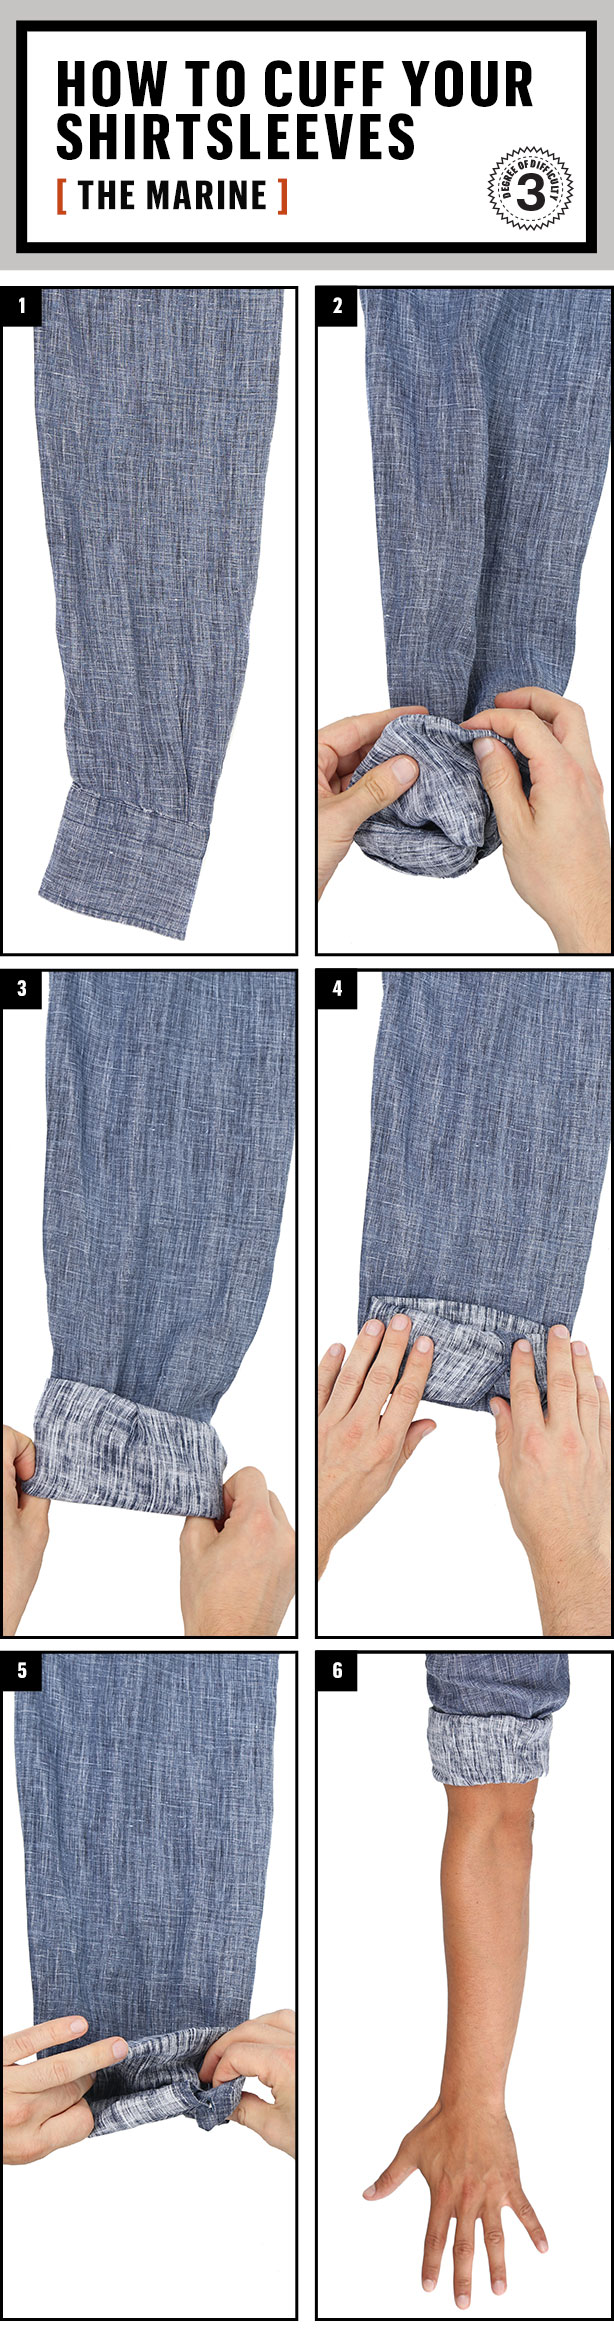 ac6b8025ba2 How to Roll Up Your Sleeves...Correctly